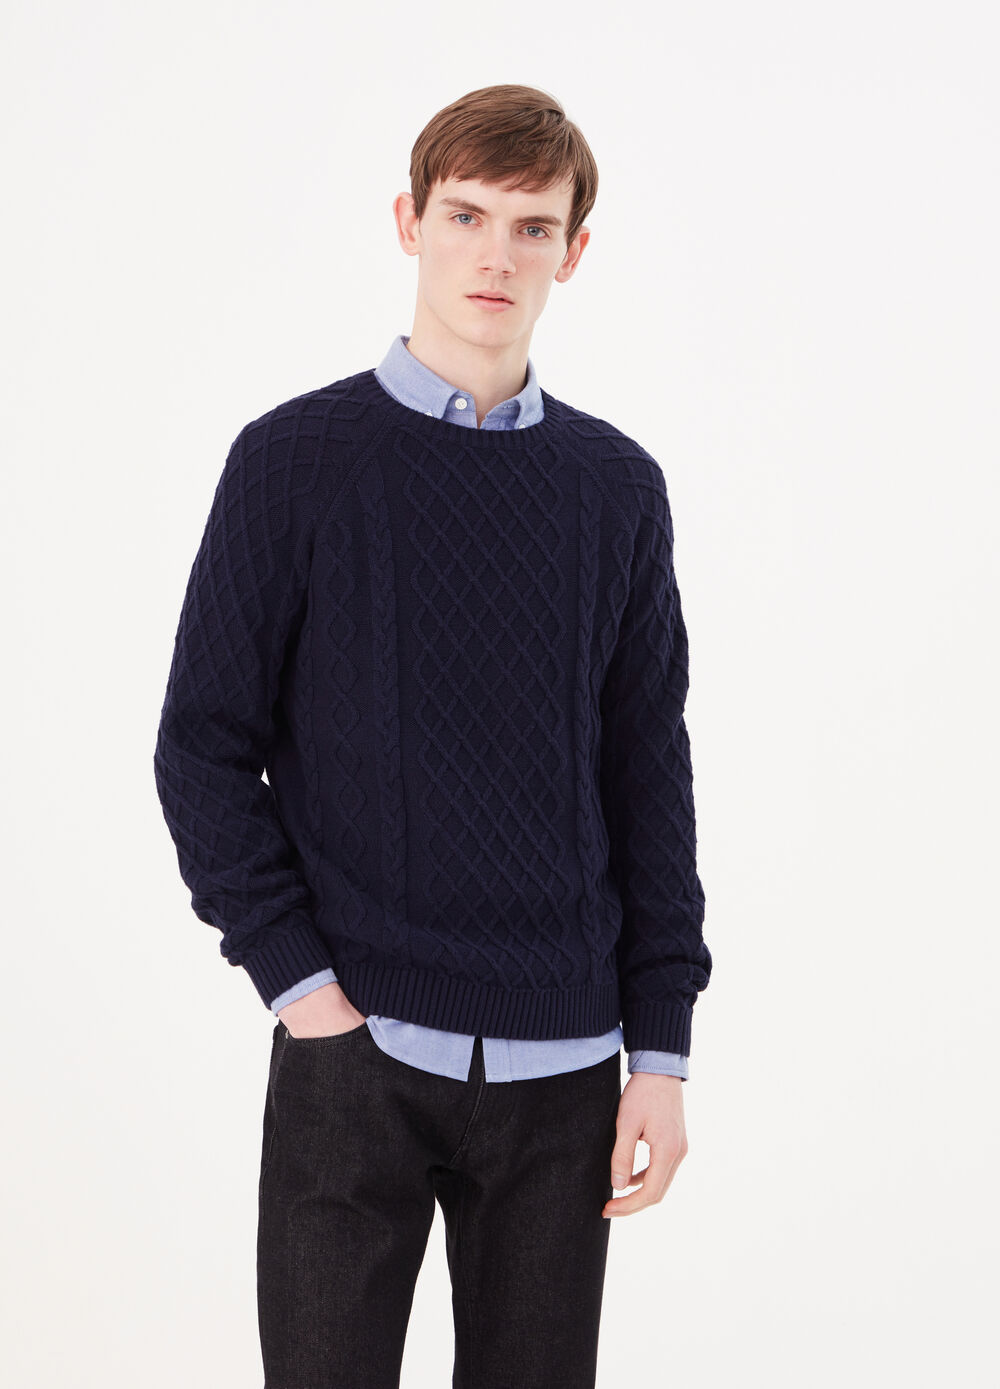 Solid colour 100% cotton knit pullover